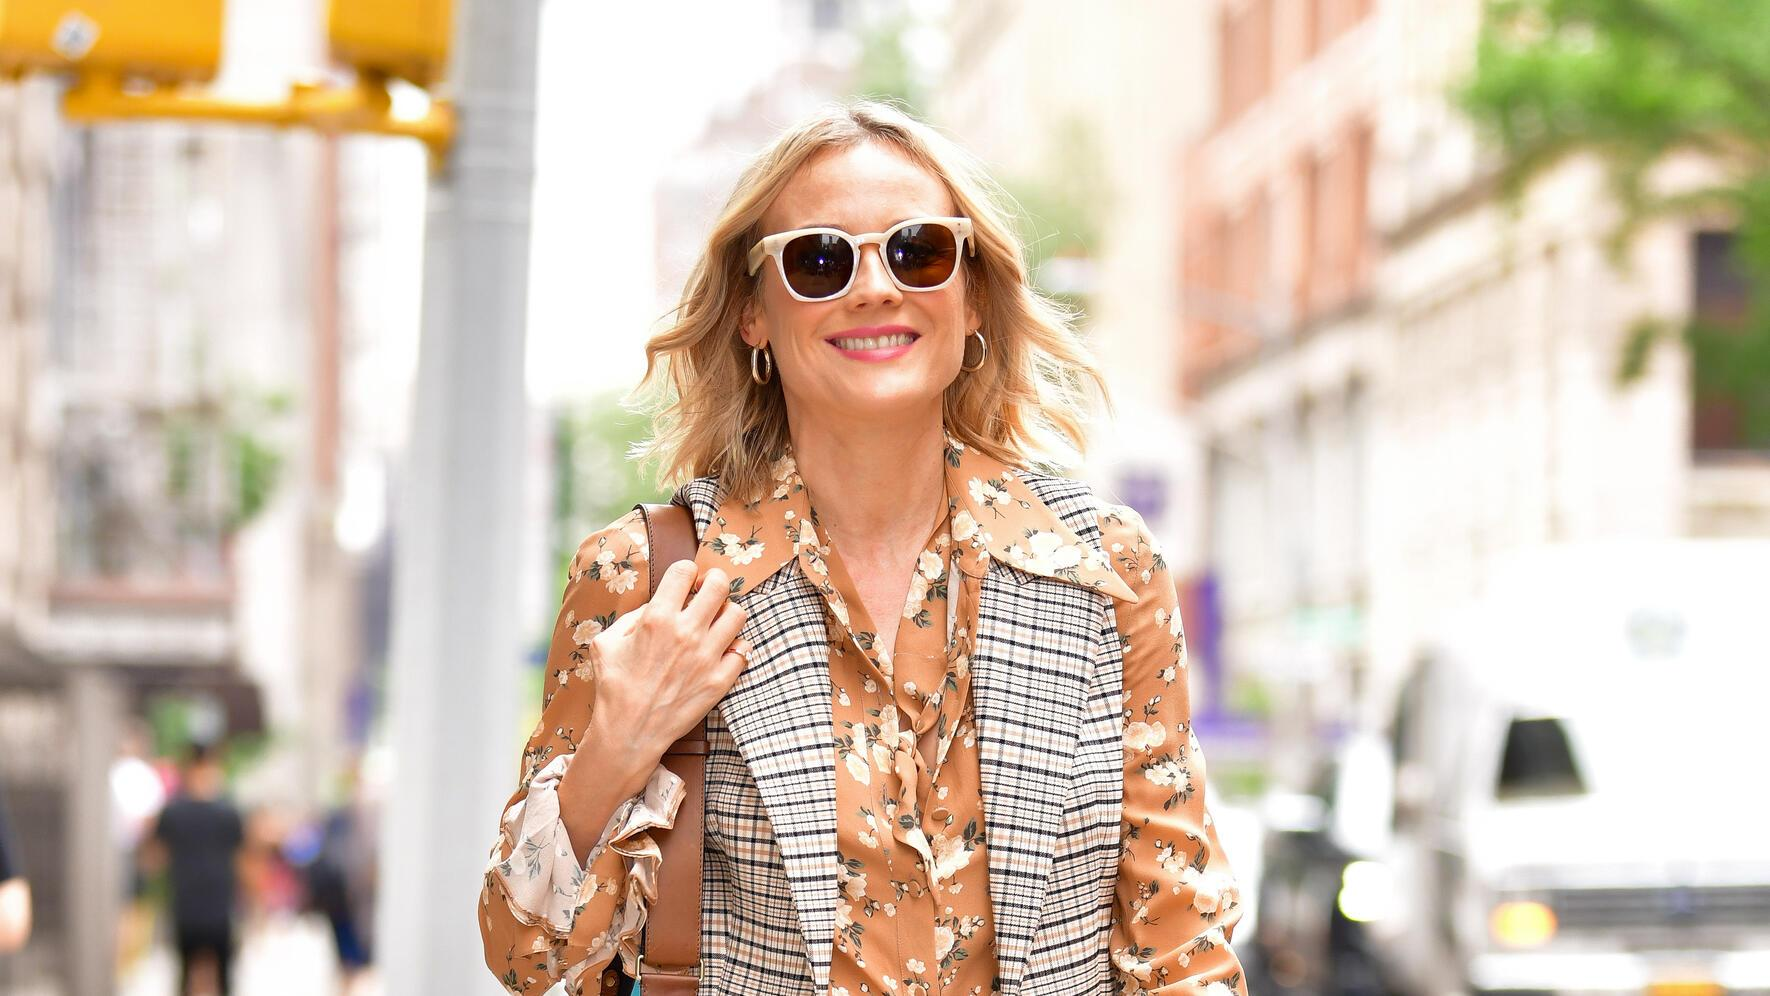 NEW YORK, NY - JULY 18:  Diane Kruger is seen outside the Build Studio on July 18, 2019 in New York City.  (Photo by James Devaney/GC Images)